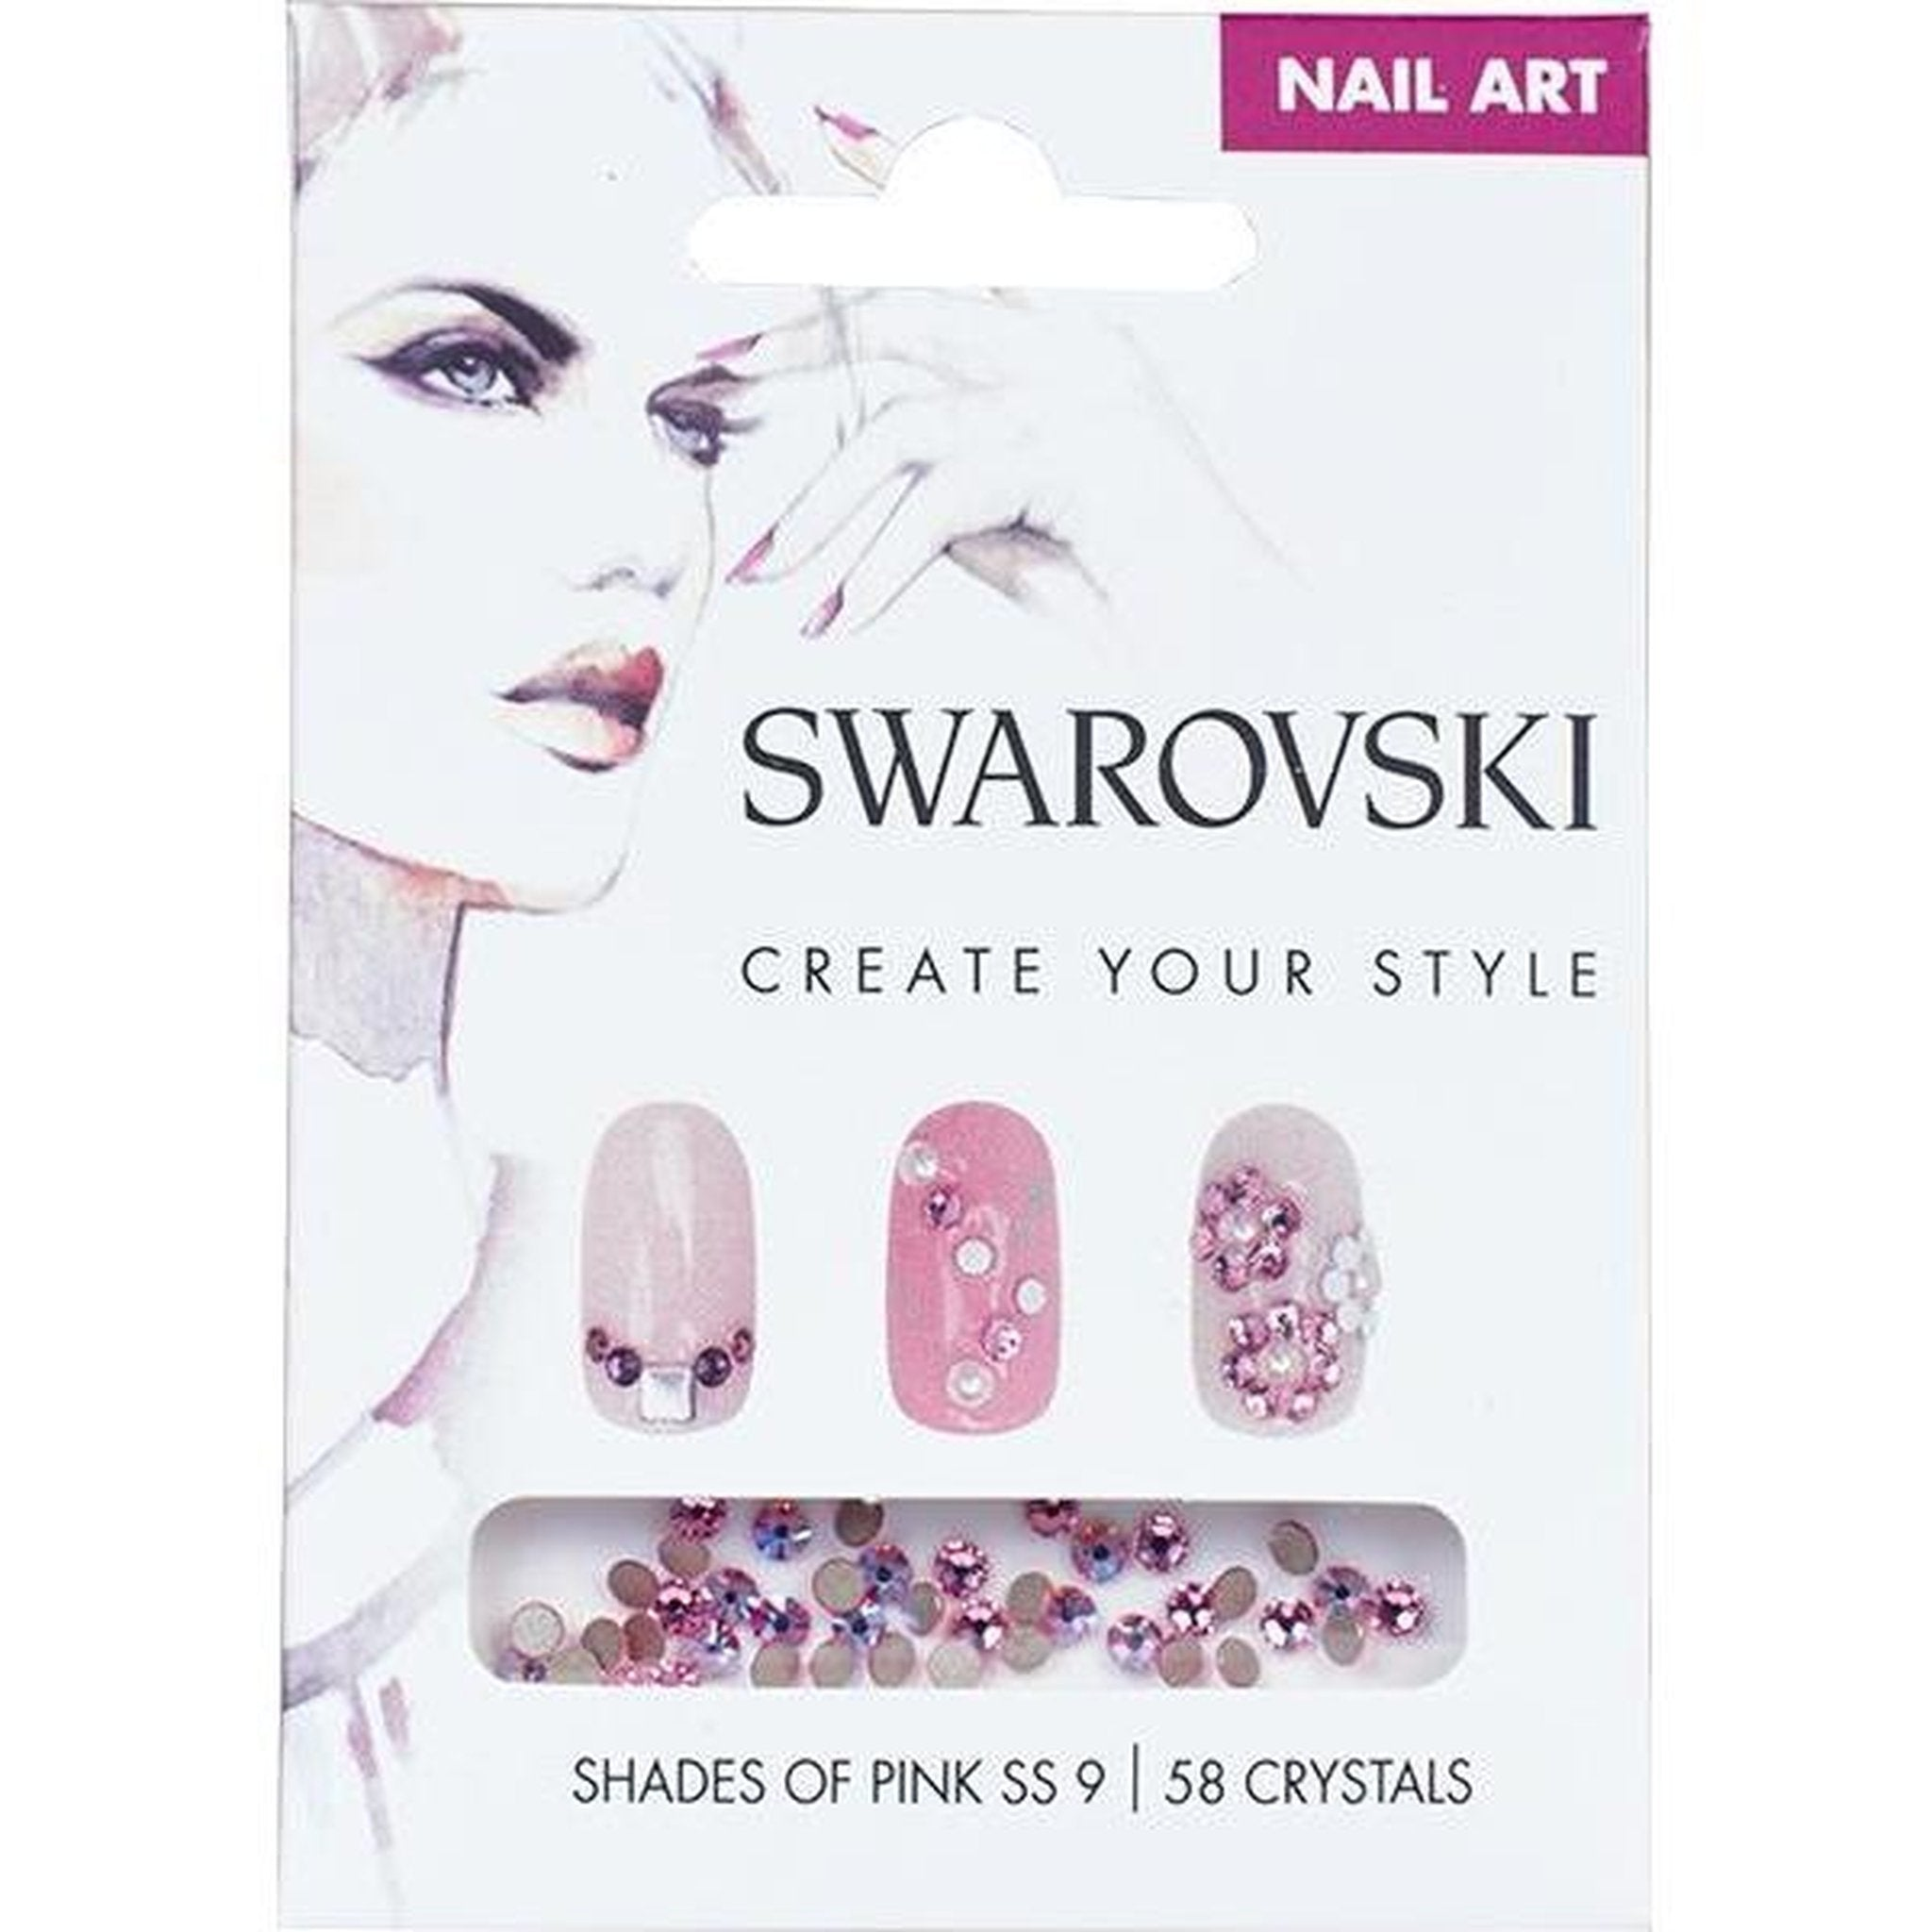 SWAROVSKI NAIL ART LOOSE CRYSTALS - PINK SS9-Gel Essentialz